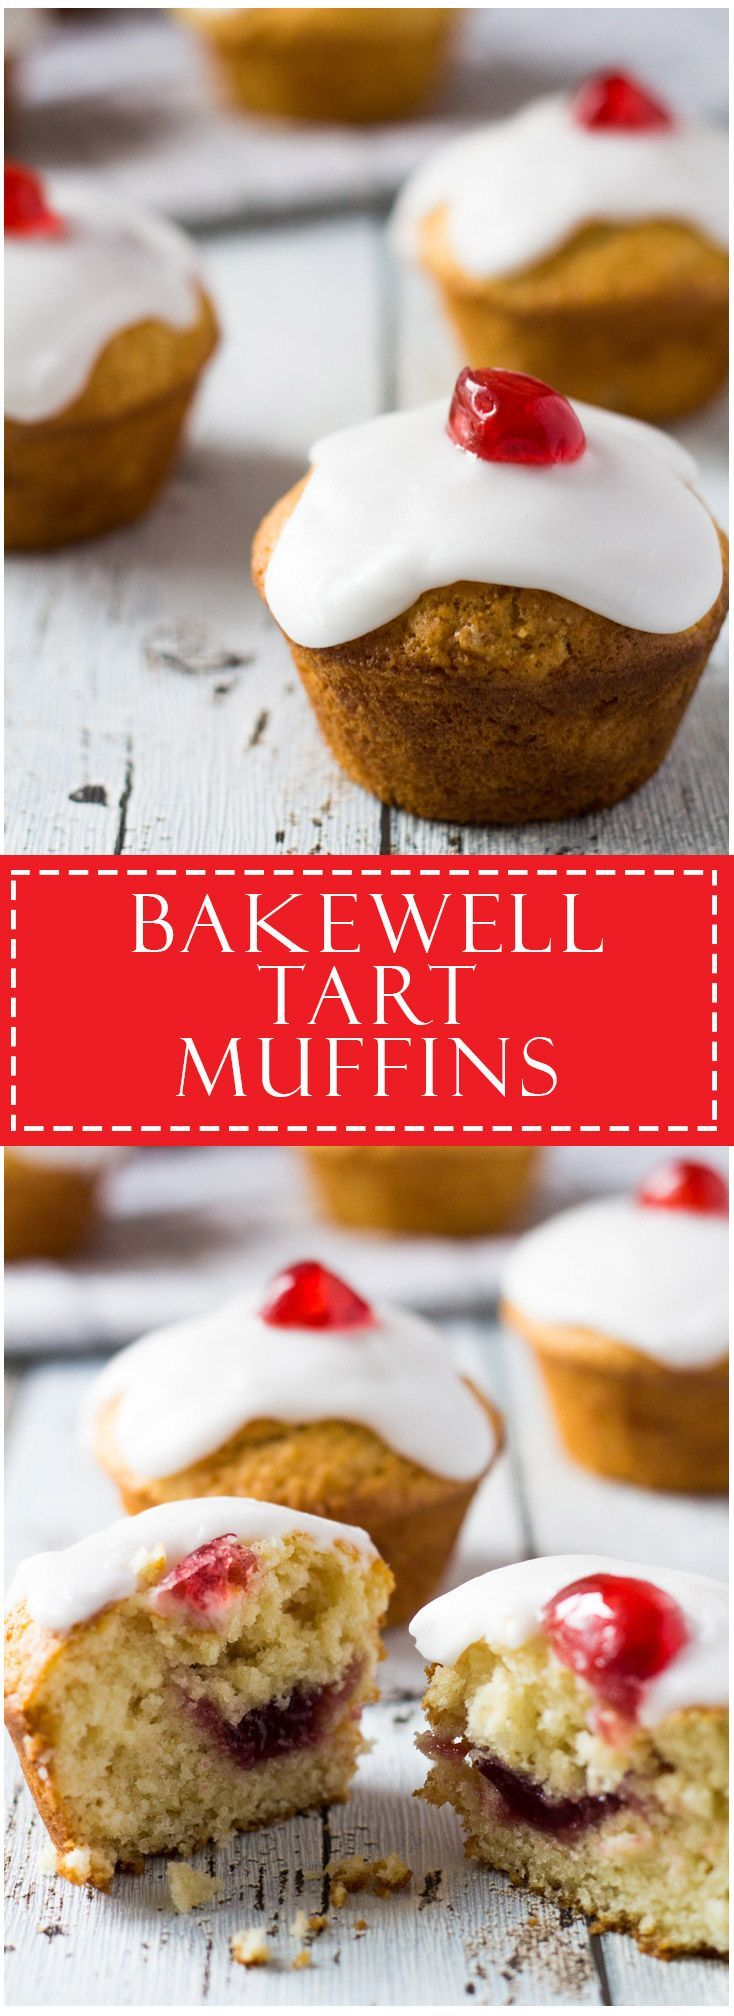 Bakewell Tart Muffins | Marsha's Baking Addiction